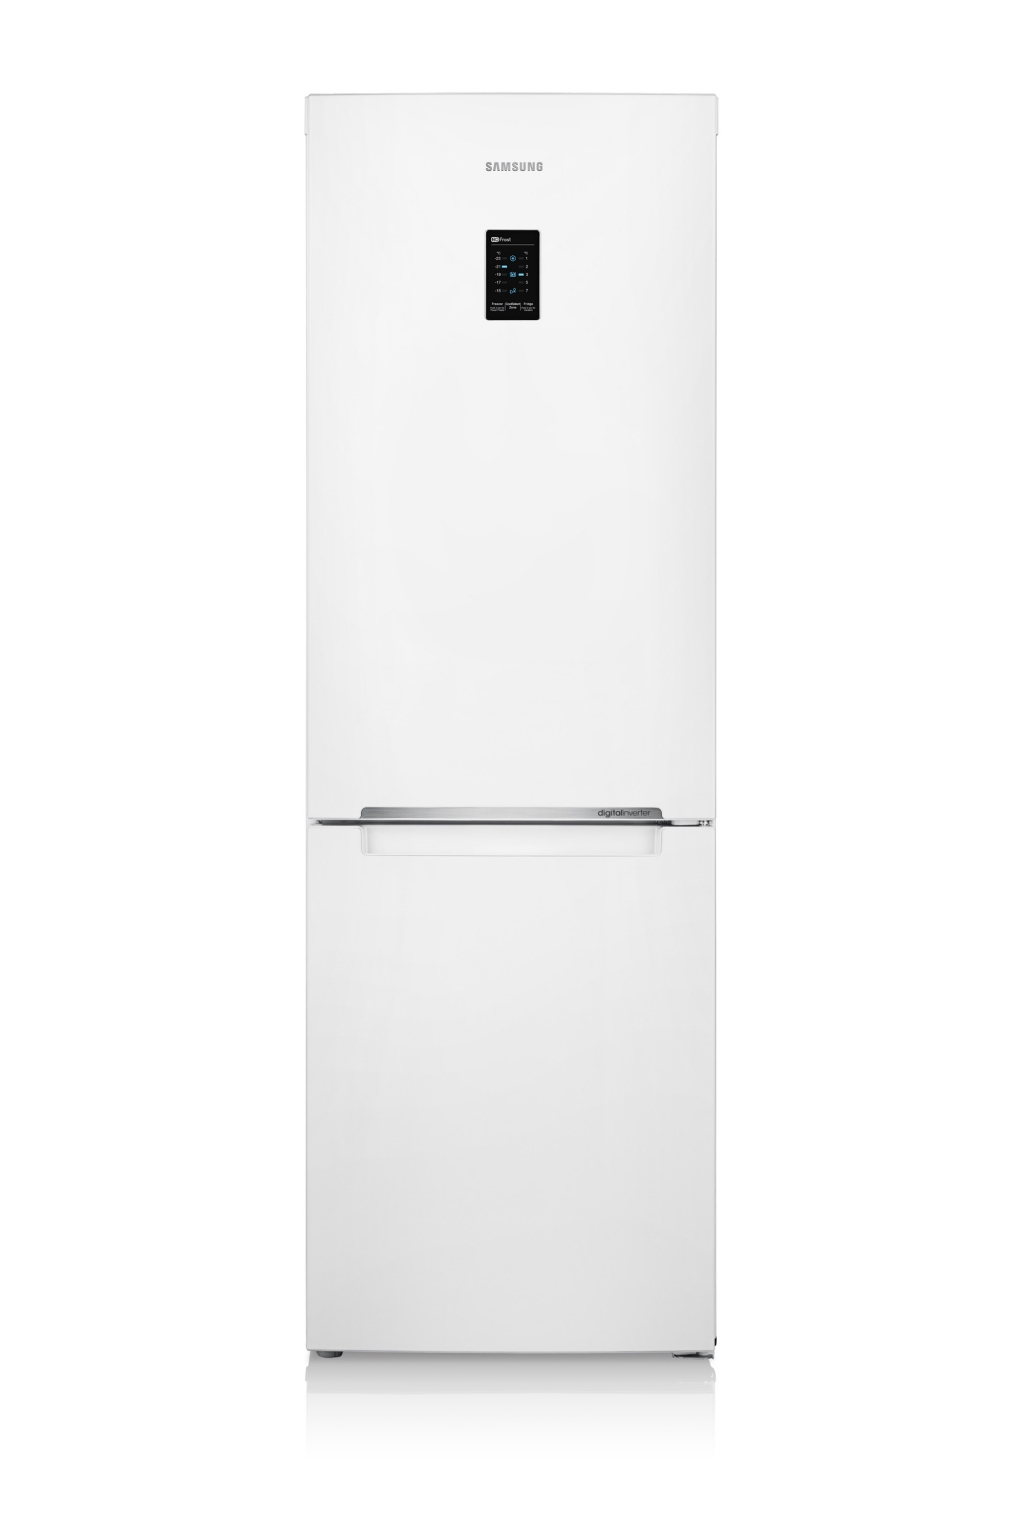 Samsung Refrigerators Sweep the Top 8 Places at Evaluation by Consumentenbond